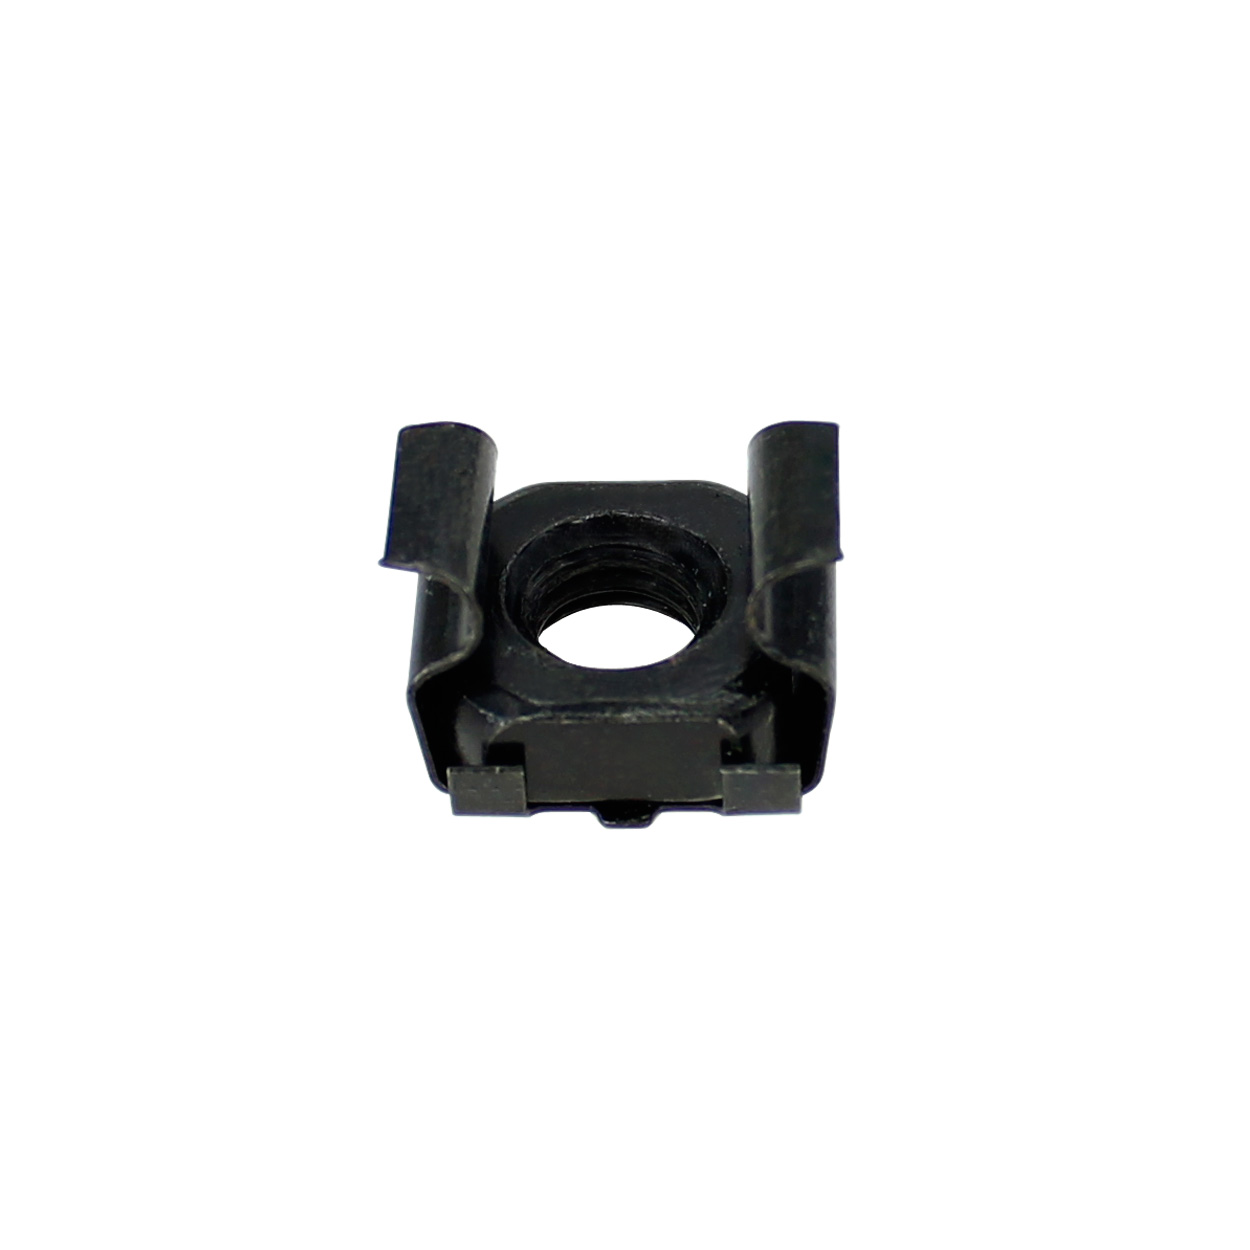 M6 Cage Nuts - 50pcs/bag, Black